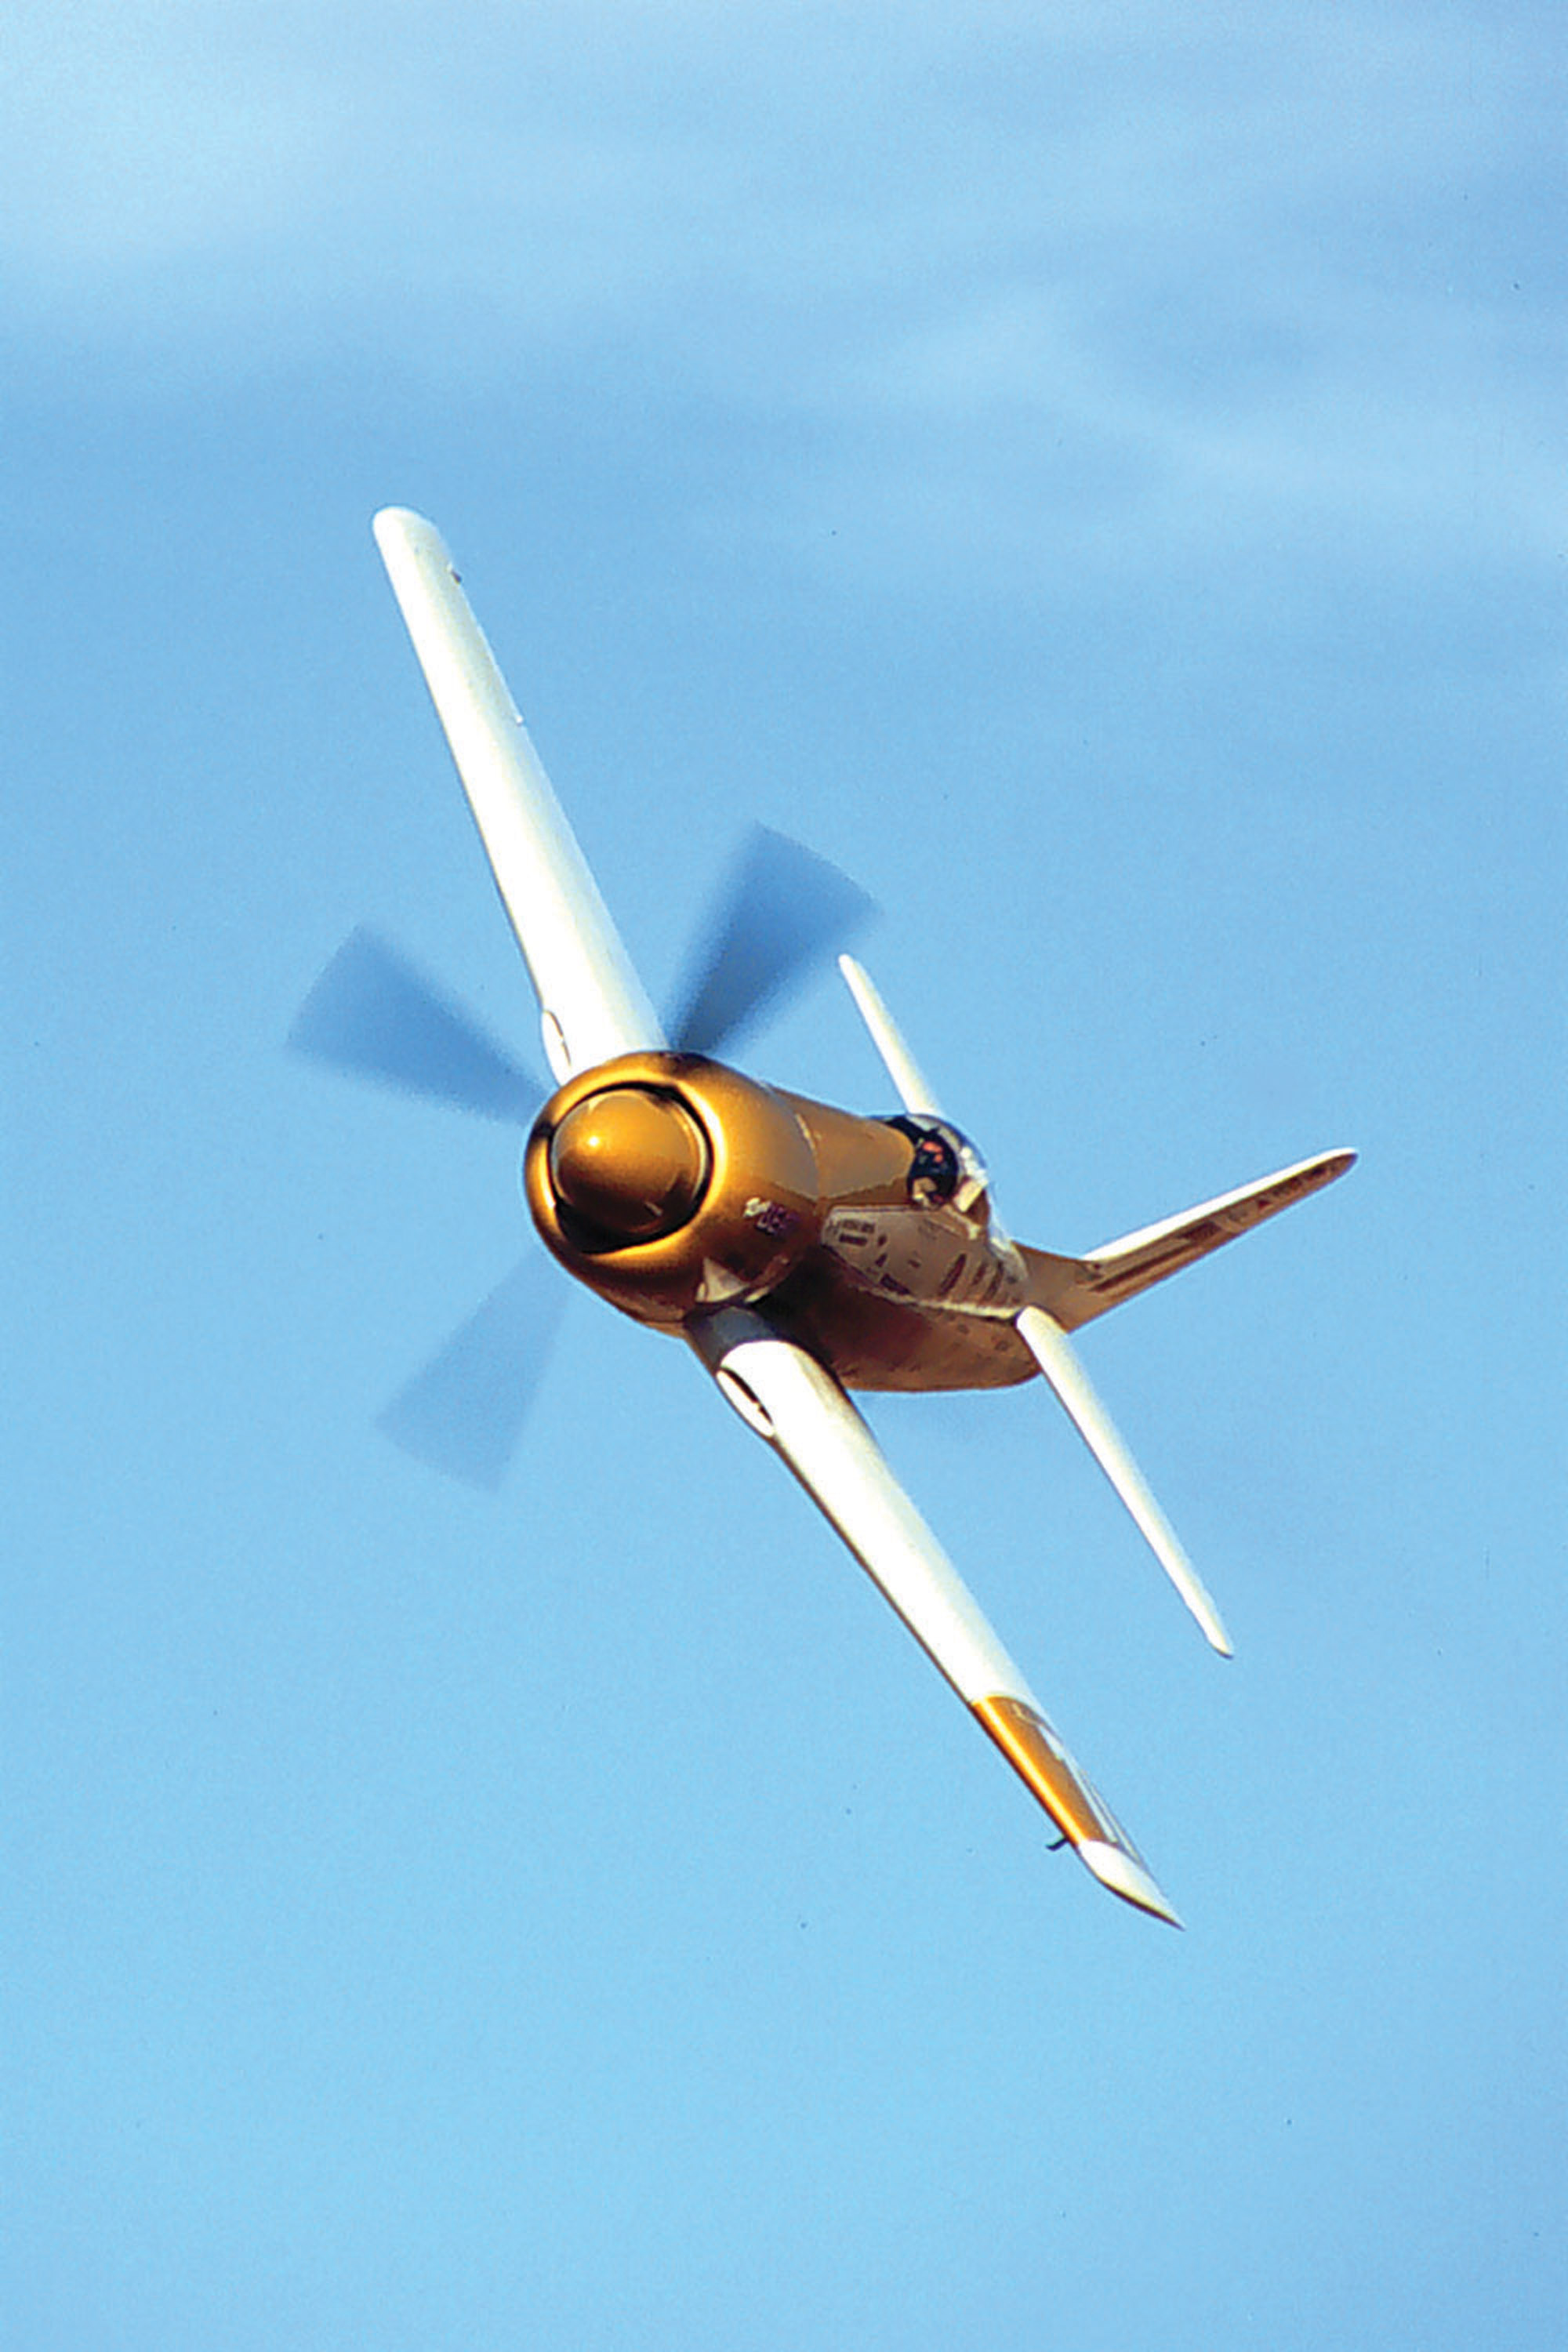 The Winner's Circle: The 2005 Reno Air Races